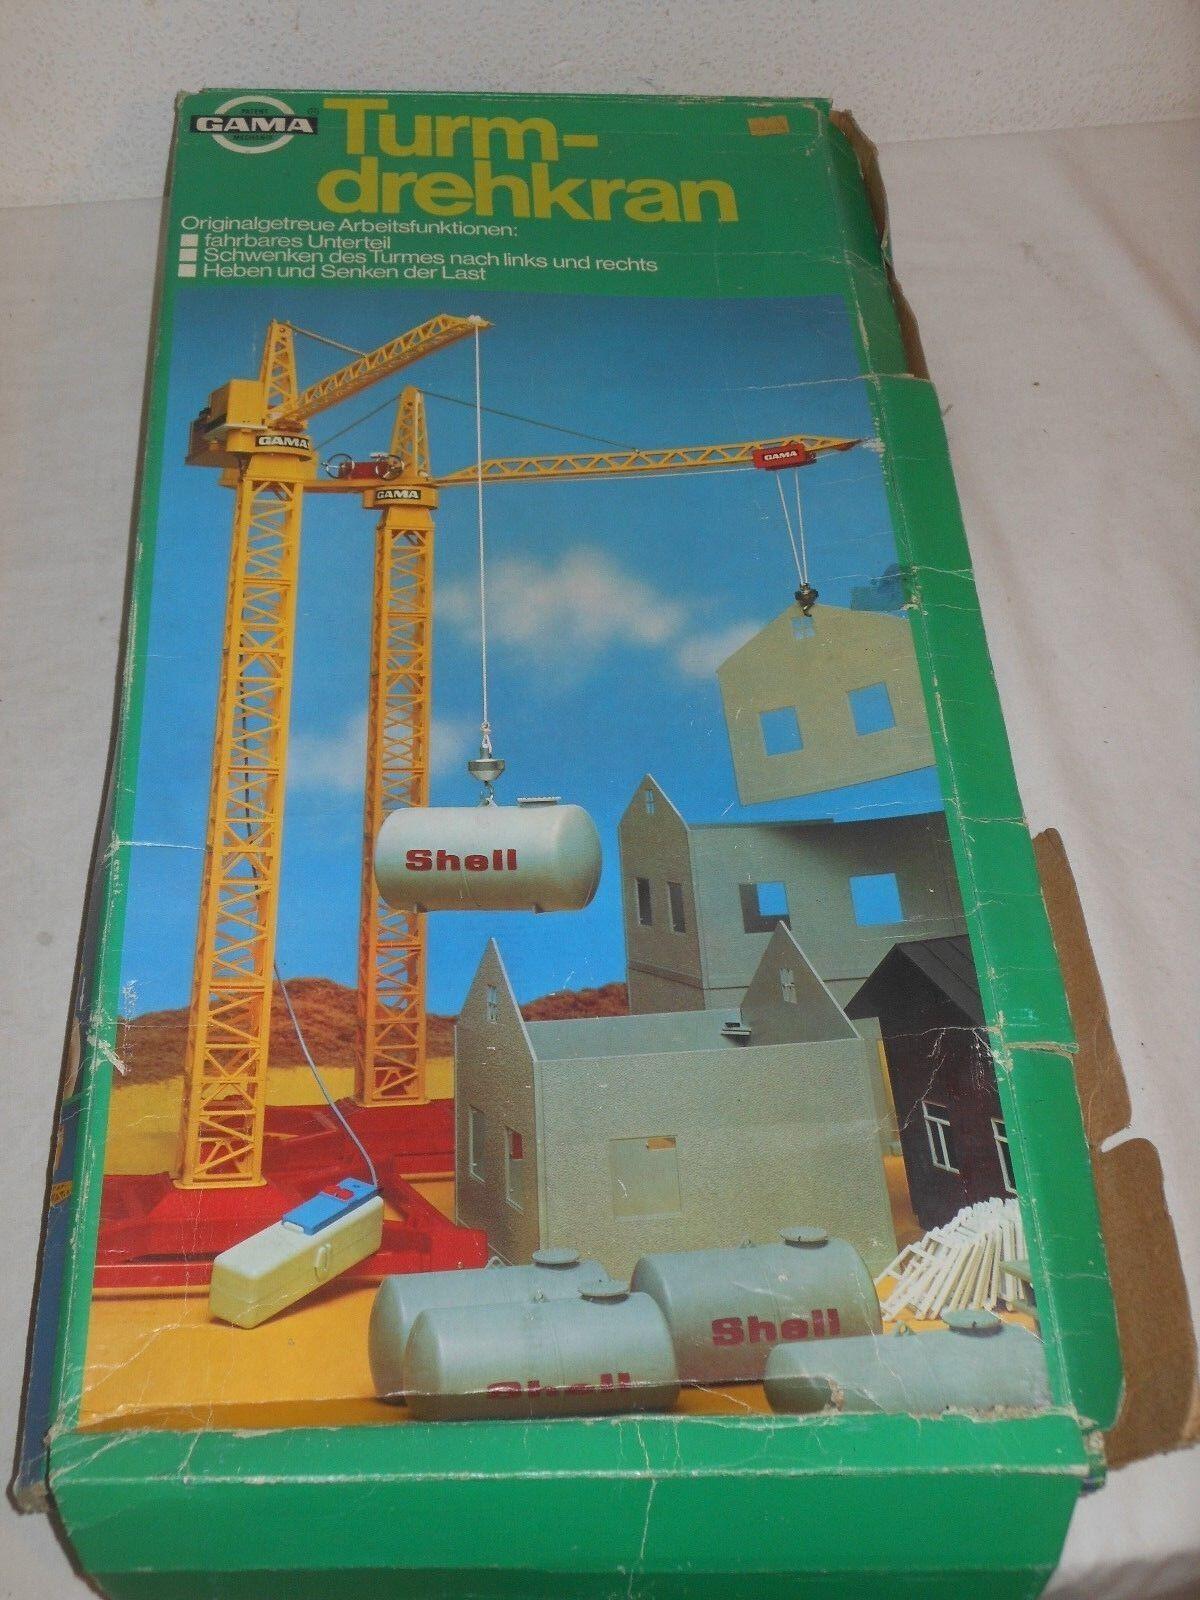 Gama - Large Big Tower Crane - Construction Crane - Toy Germany -